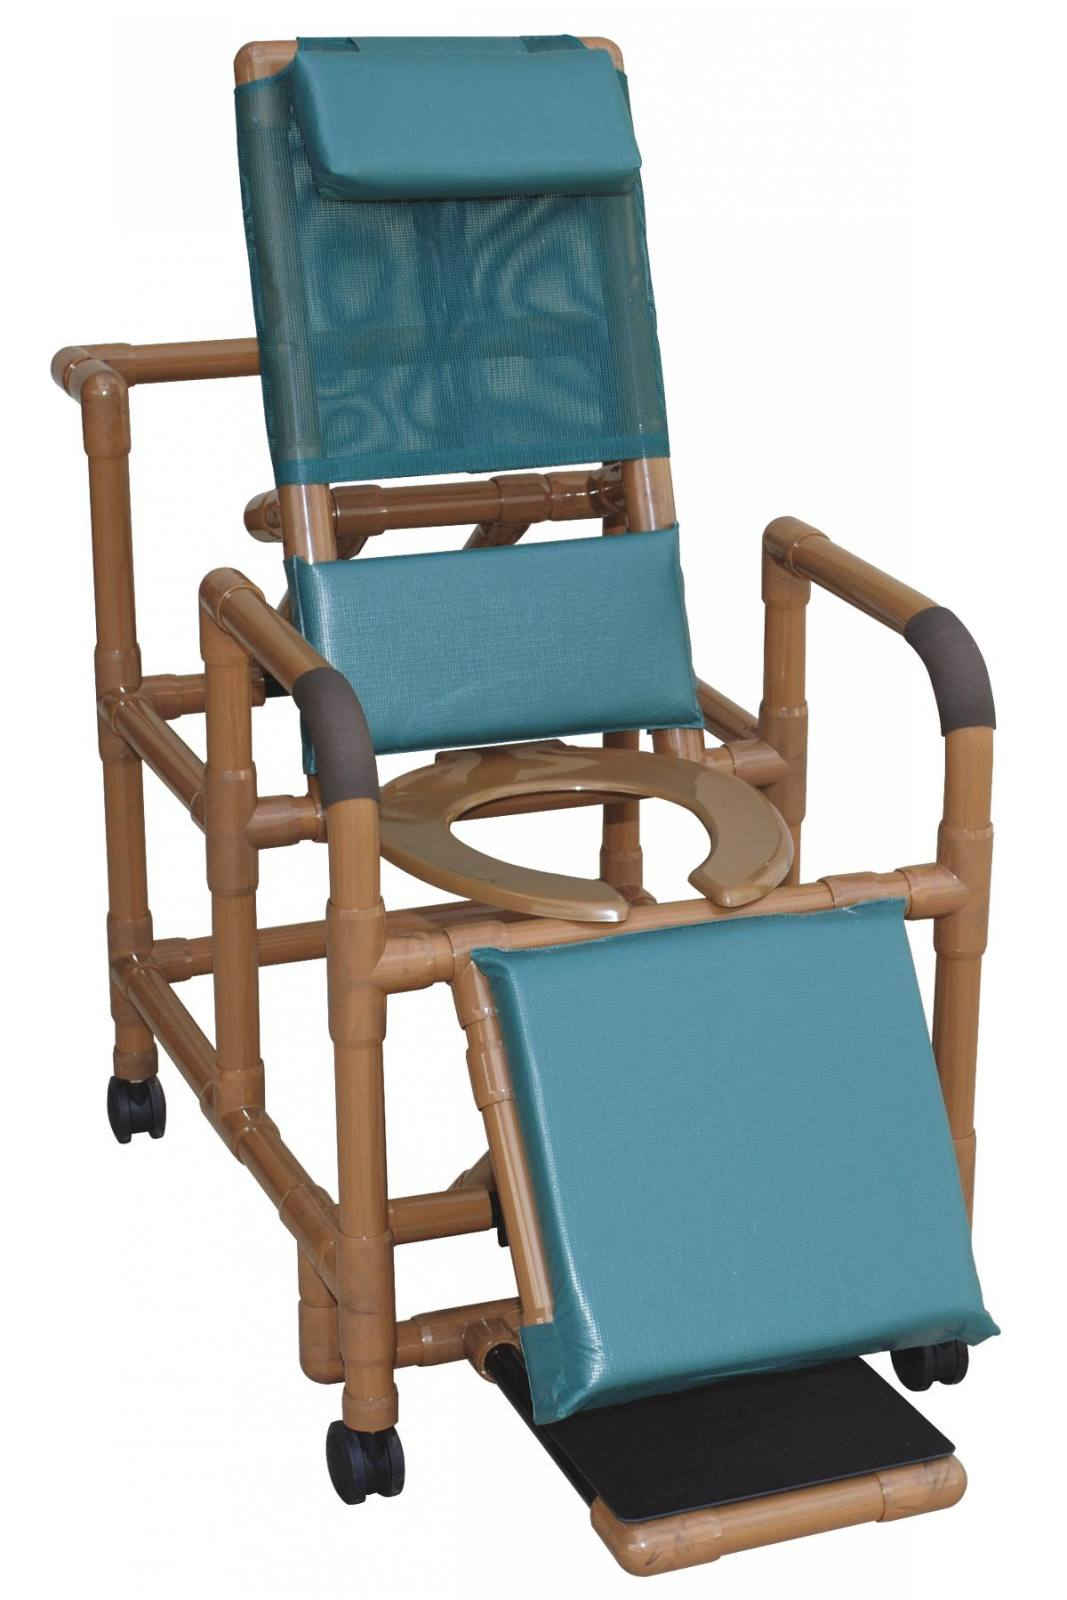 PVC WOODTONE RECLINING SHOWER CHAIR for sale in El Paso, TX | West ...